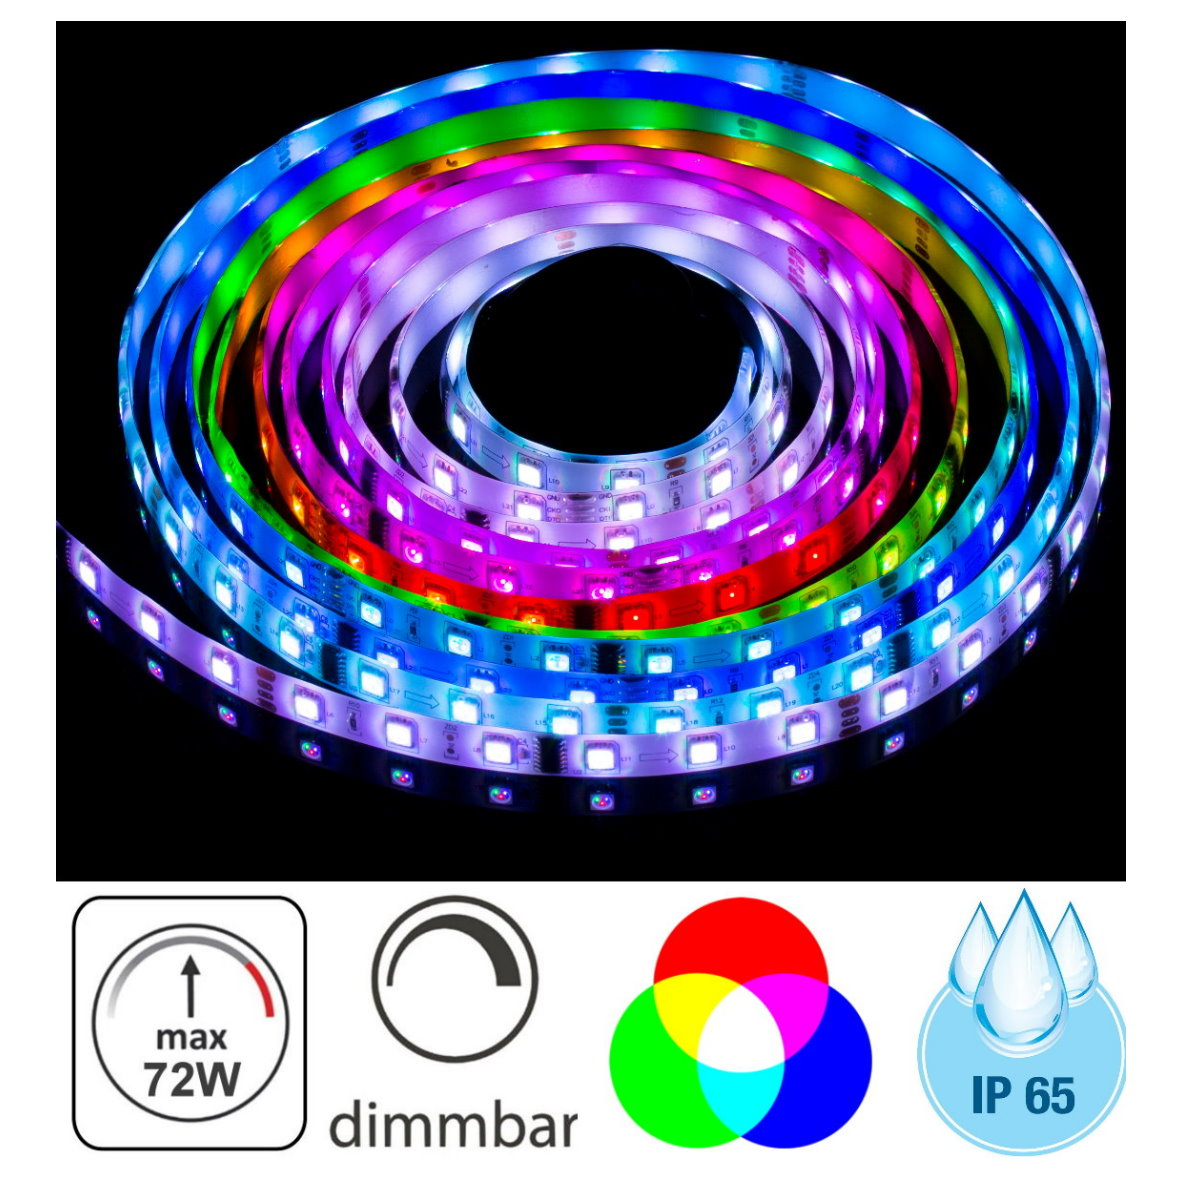 7 98 eur m 5m rgb led lichtband 72w ip65 dimmbar 300x. Black Bedroom Furniture Sets. Home Design Ideas